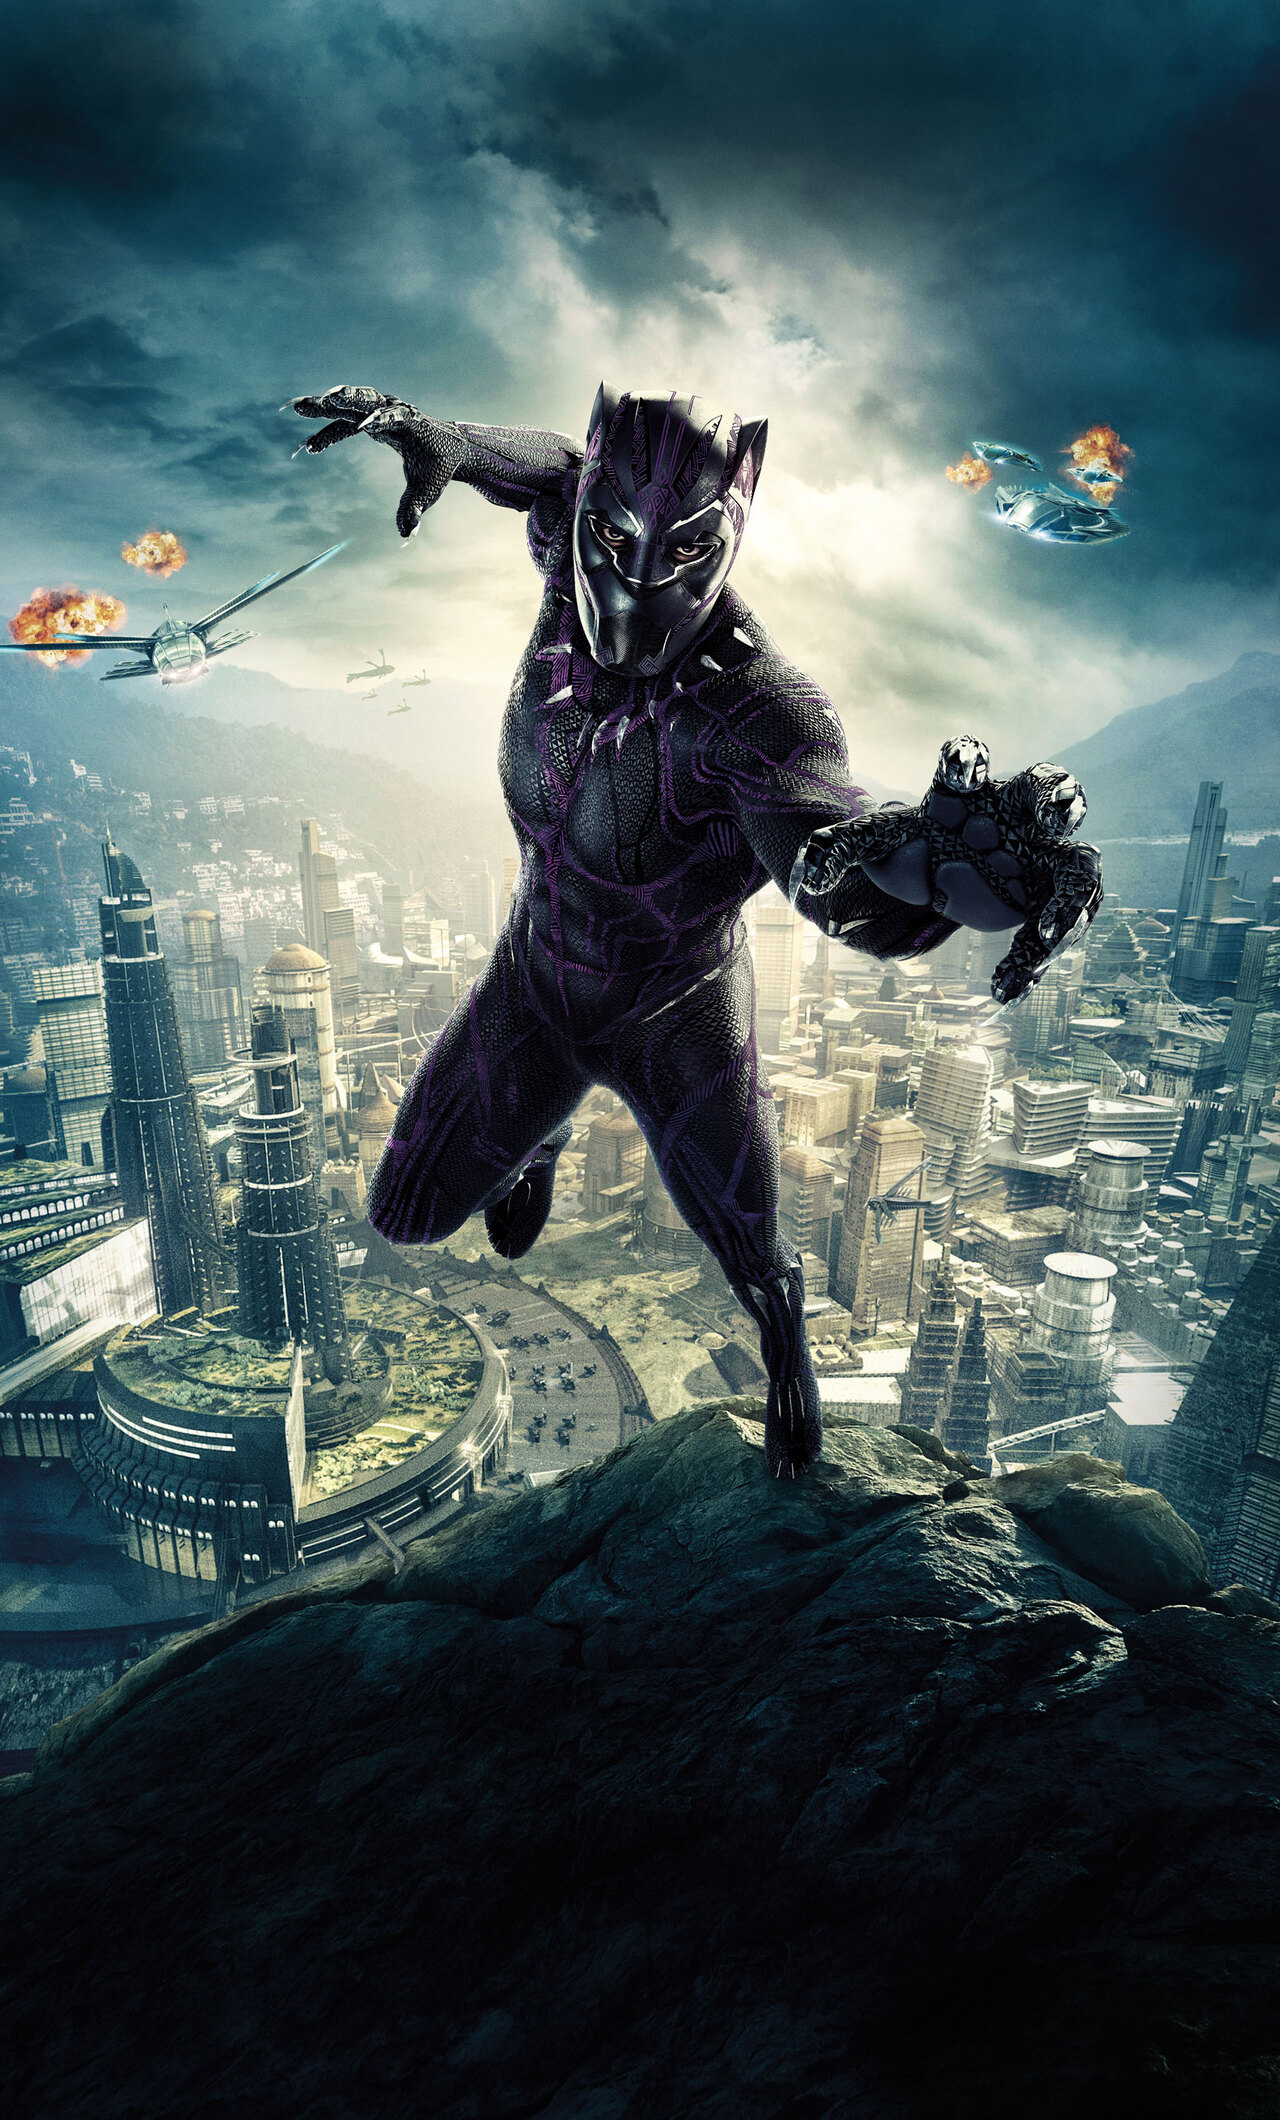 1280x2120 Black Panther 10k Poster iPhone 6+ HD 4k ...